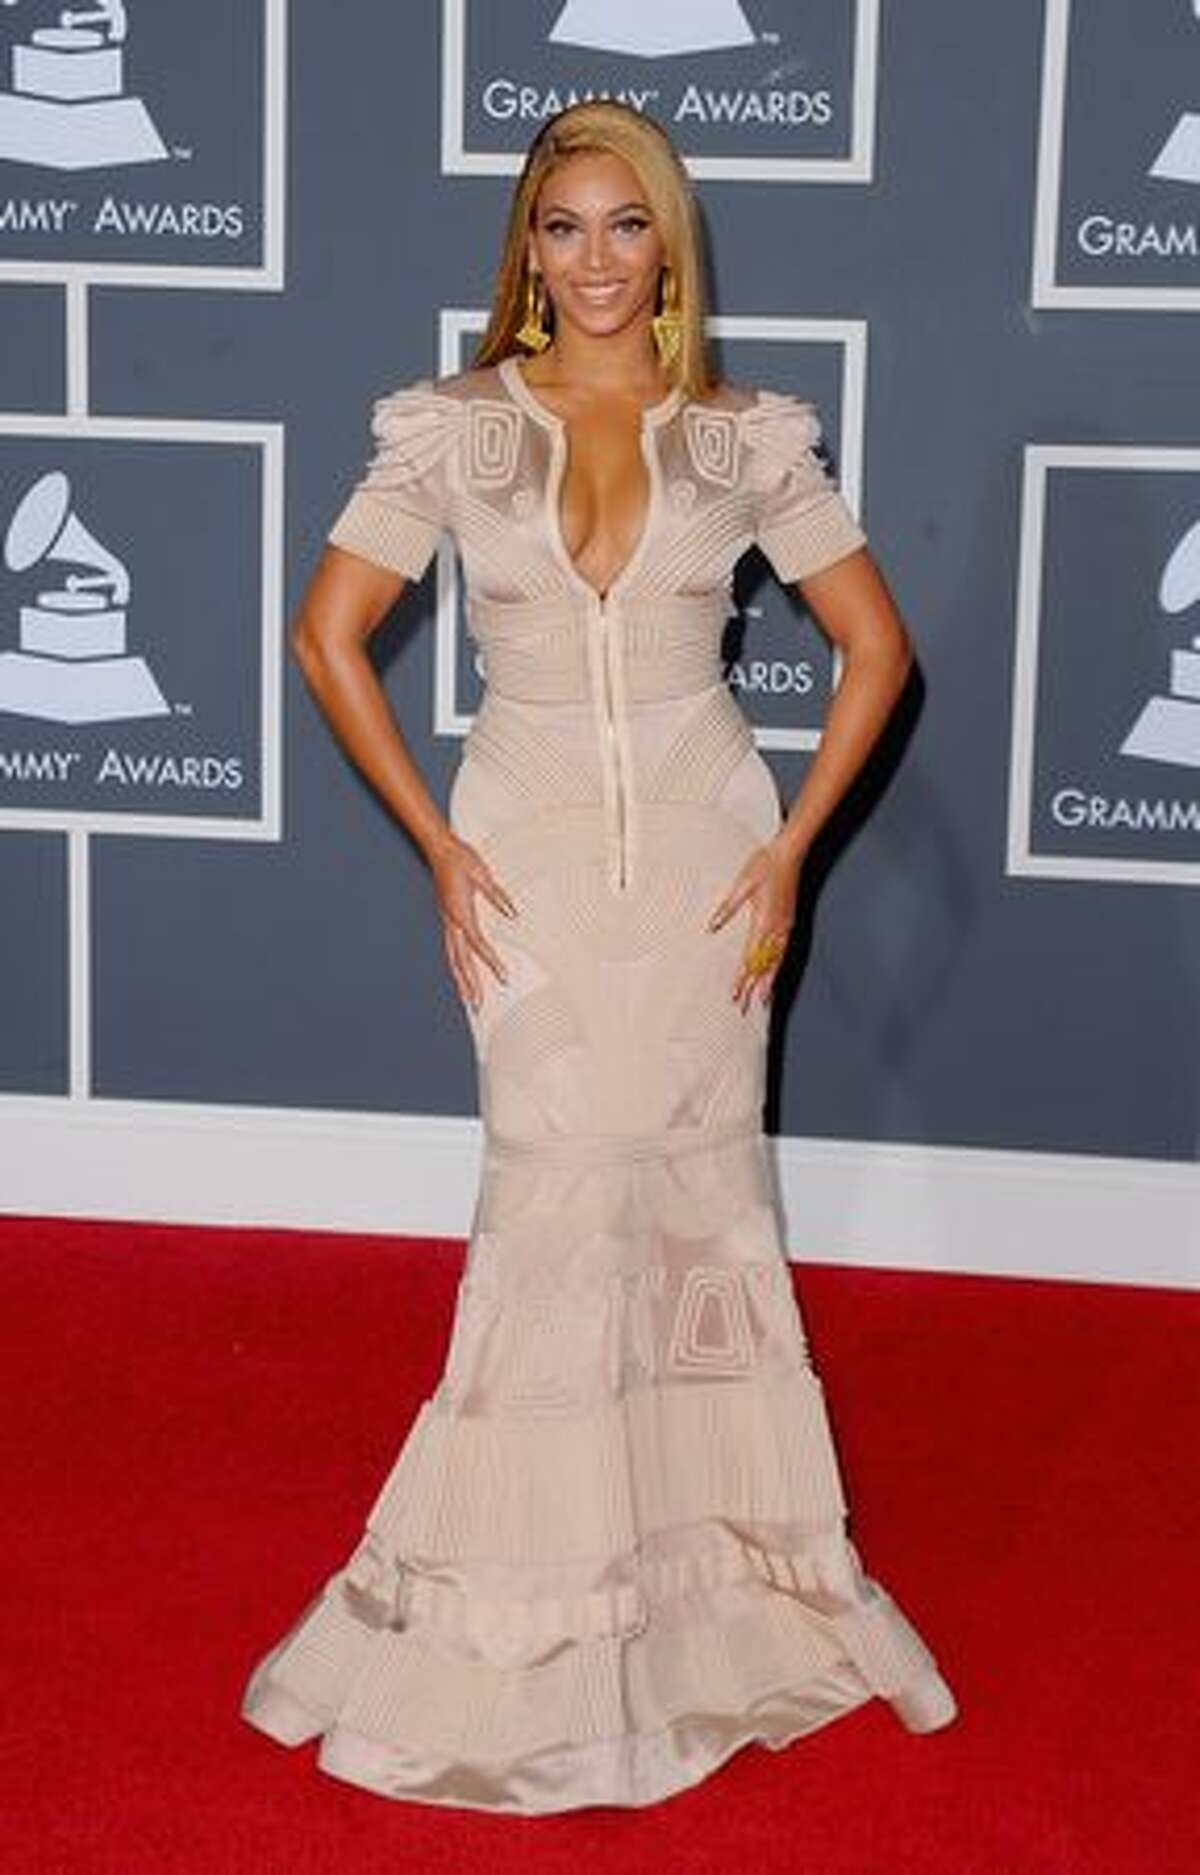 Singer Beyonce arrives at the 52nd annual Grammy Awards held at Staples Center in Los Angeles on Sunday, Jan. 31, 2010.